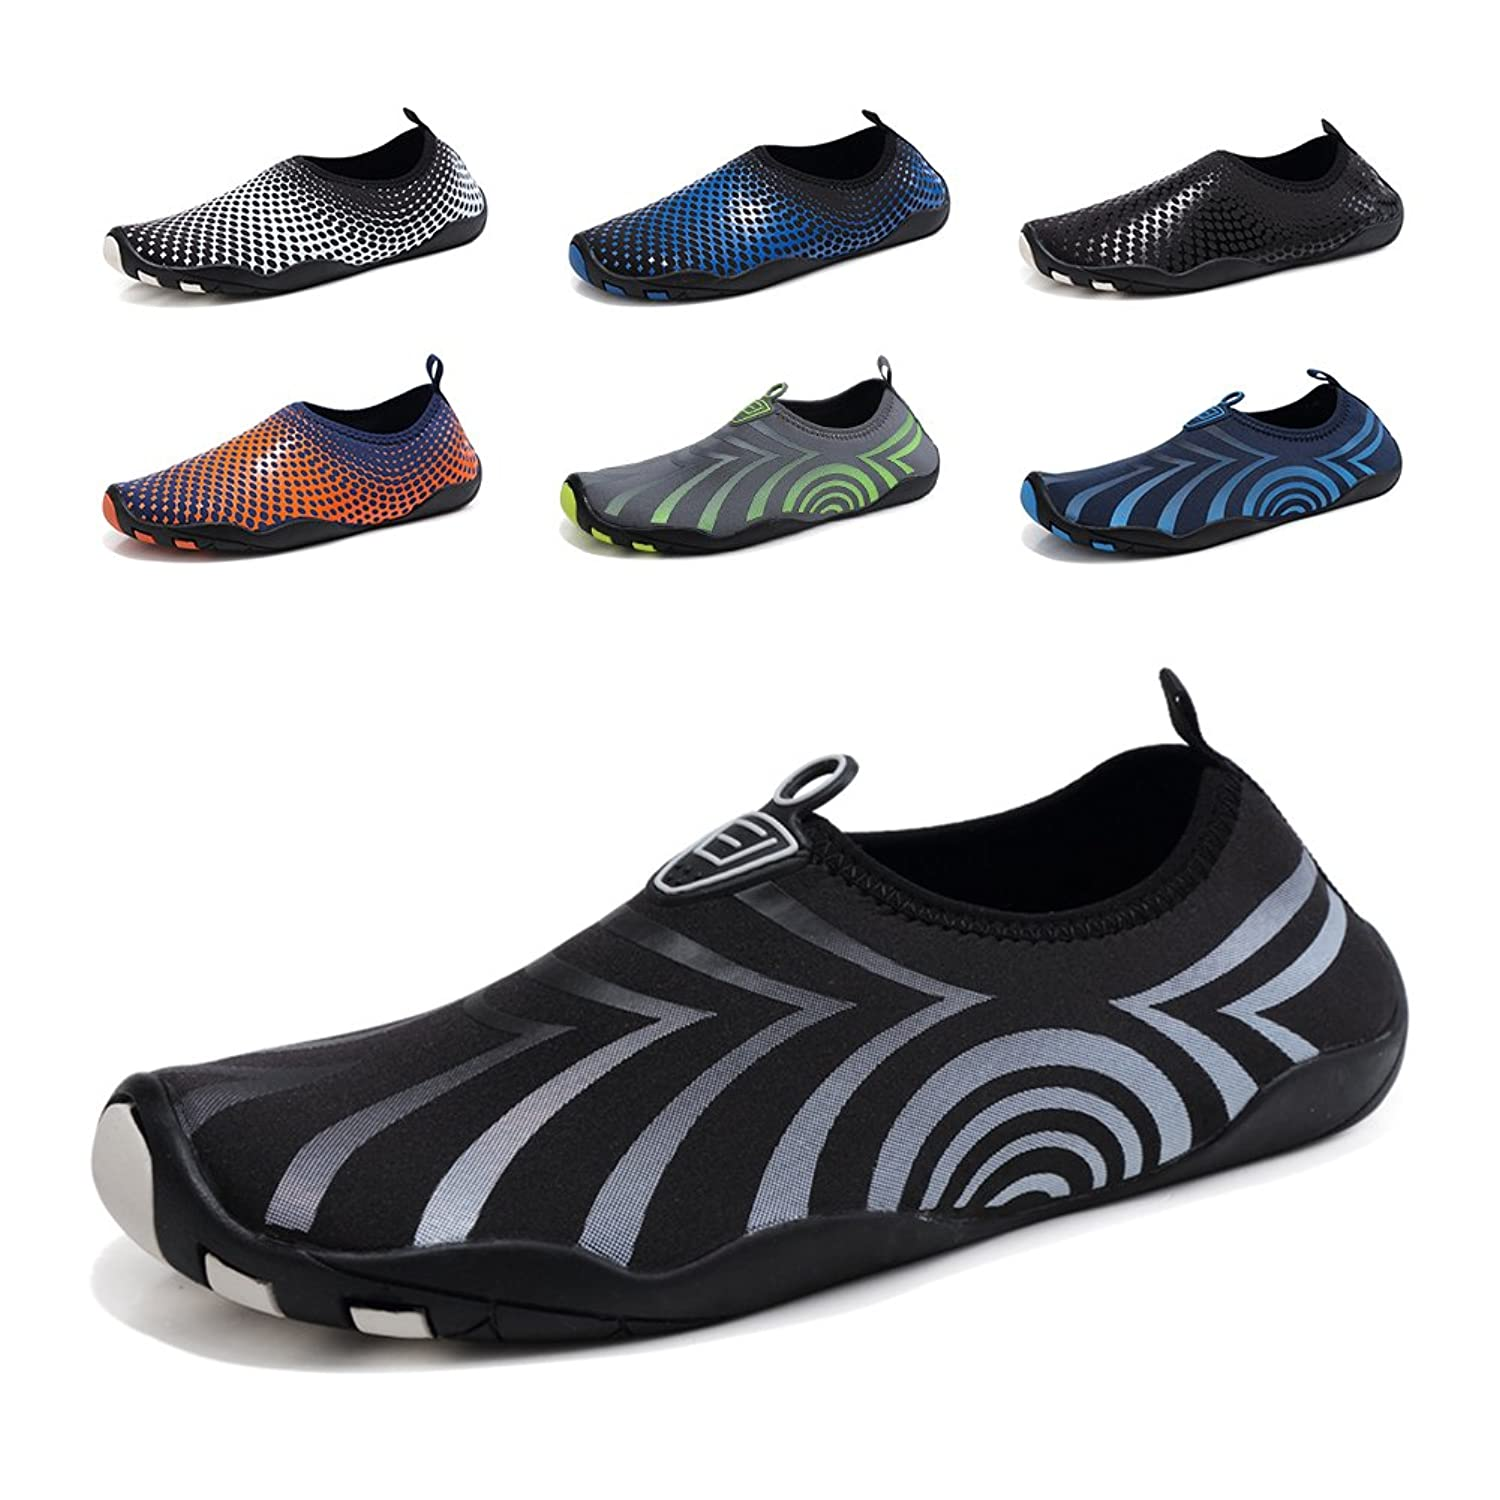 best water shoes for women men amp kids reviews july 2018